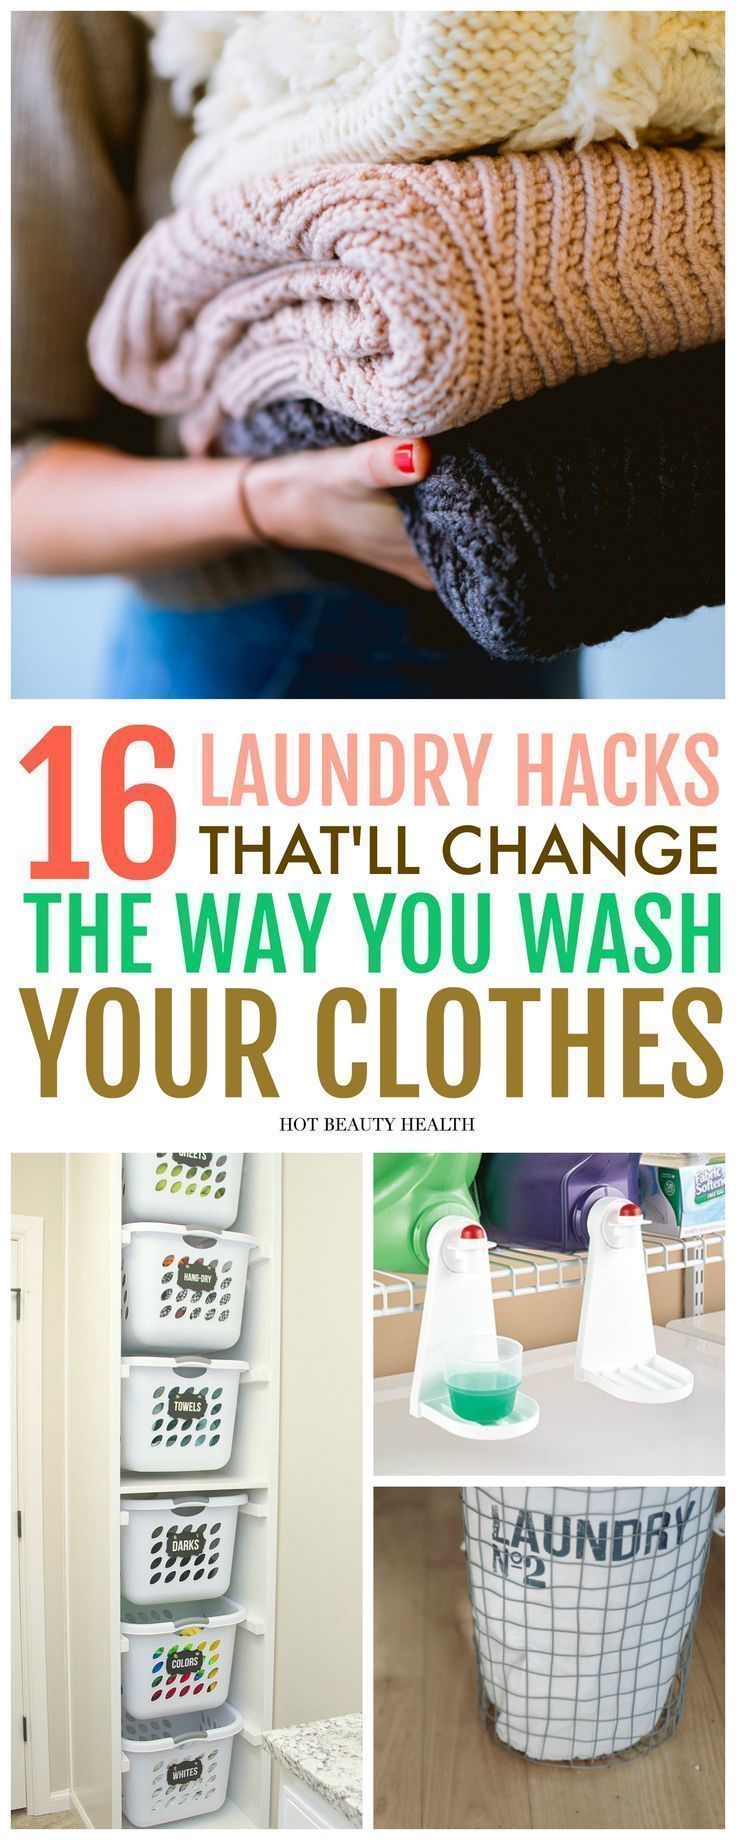 16 Laundry Hacks That Will Change The Way You Wash Clothes 16 Laundry Hacks That Will Change The Way You Wash Clothes  16 DIY Laundry Hacks That Will Change The Way You W...